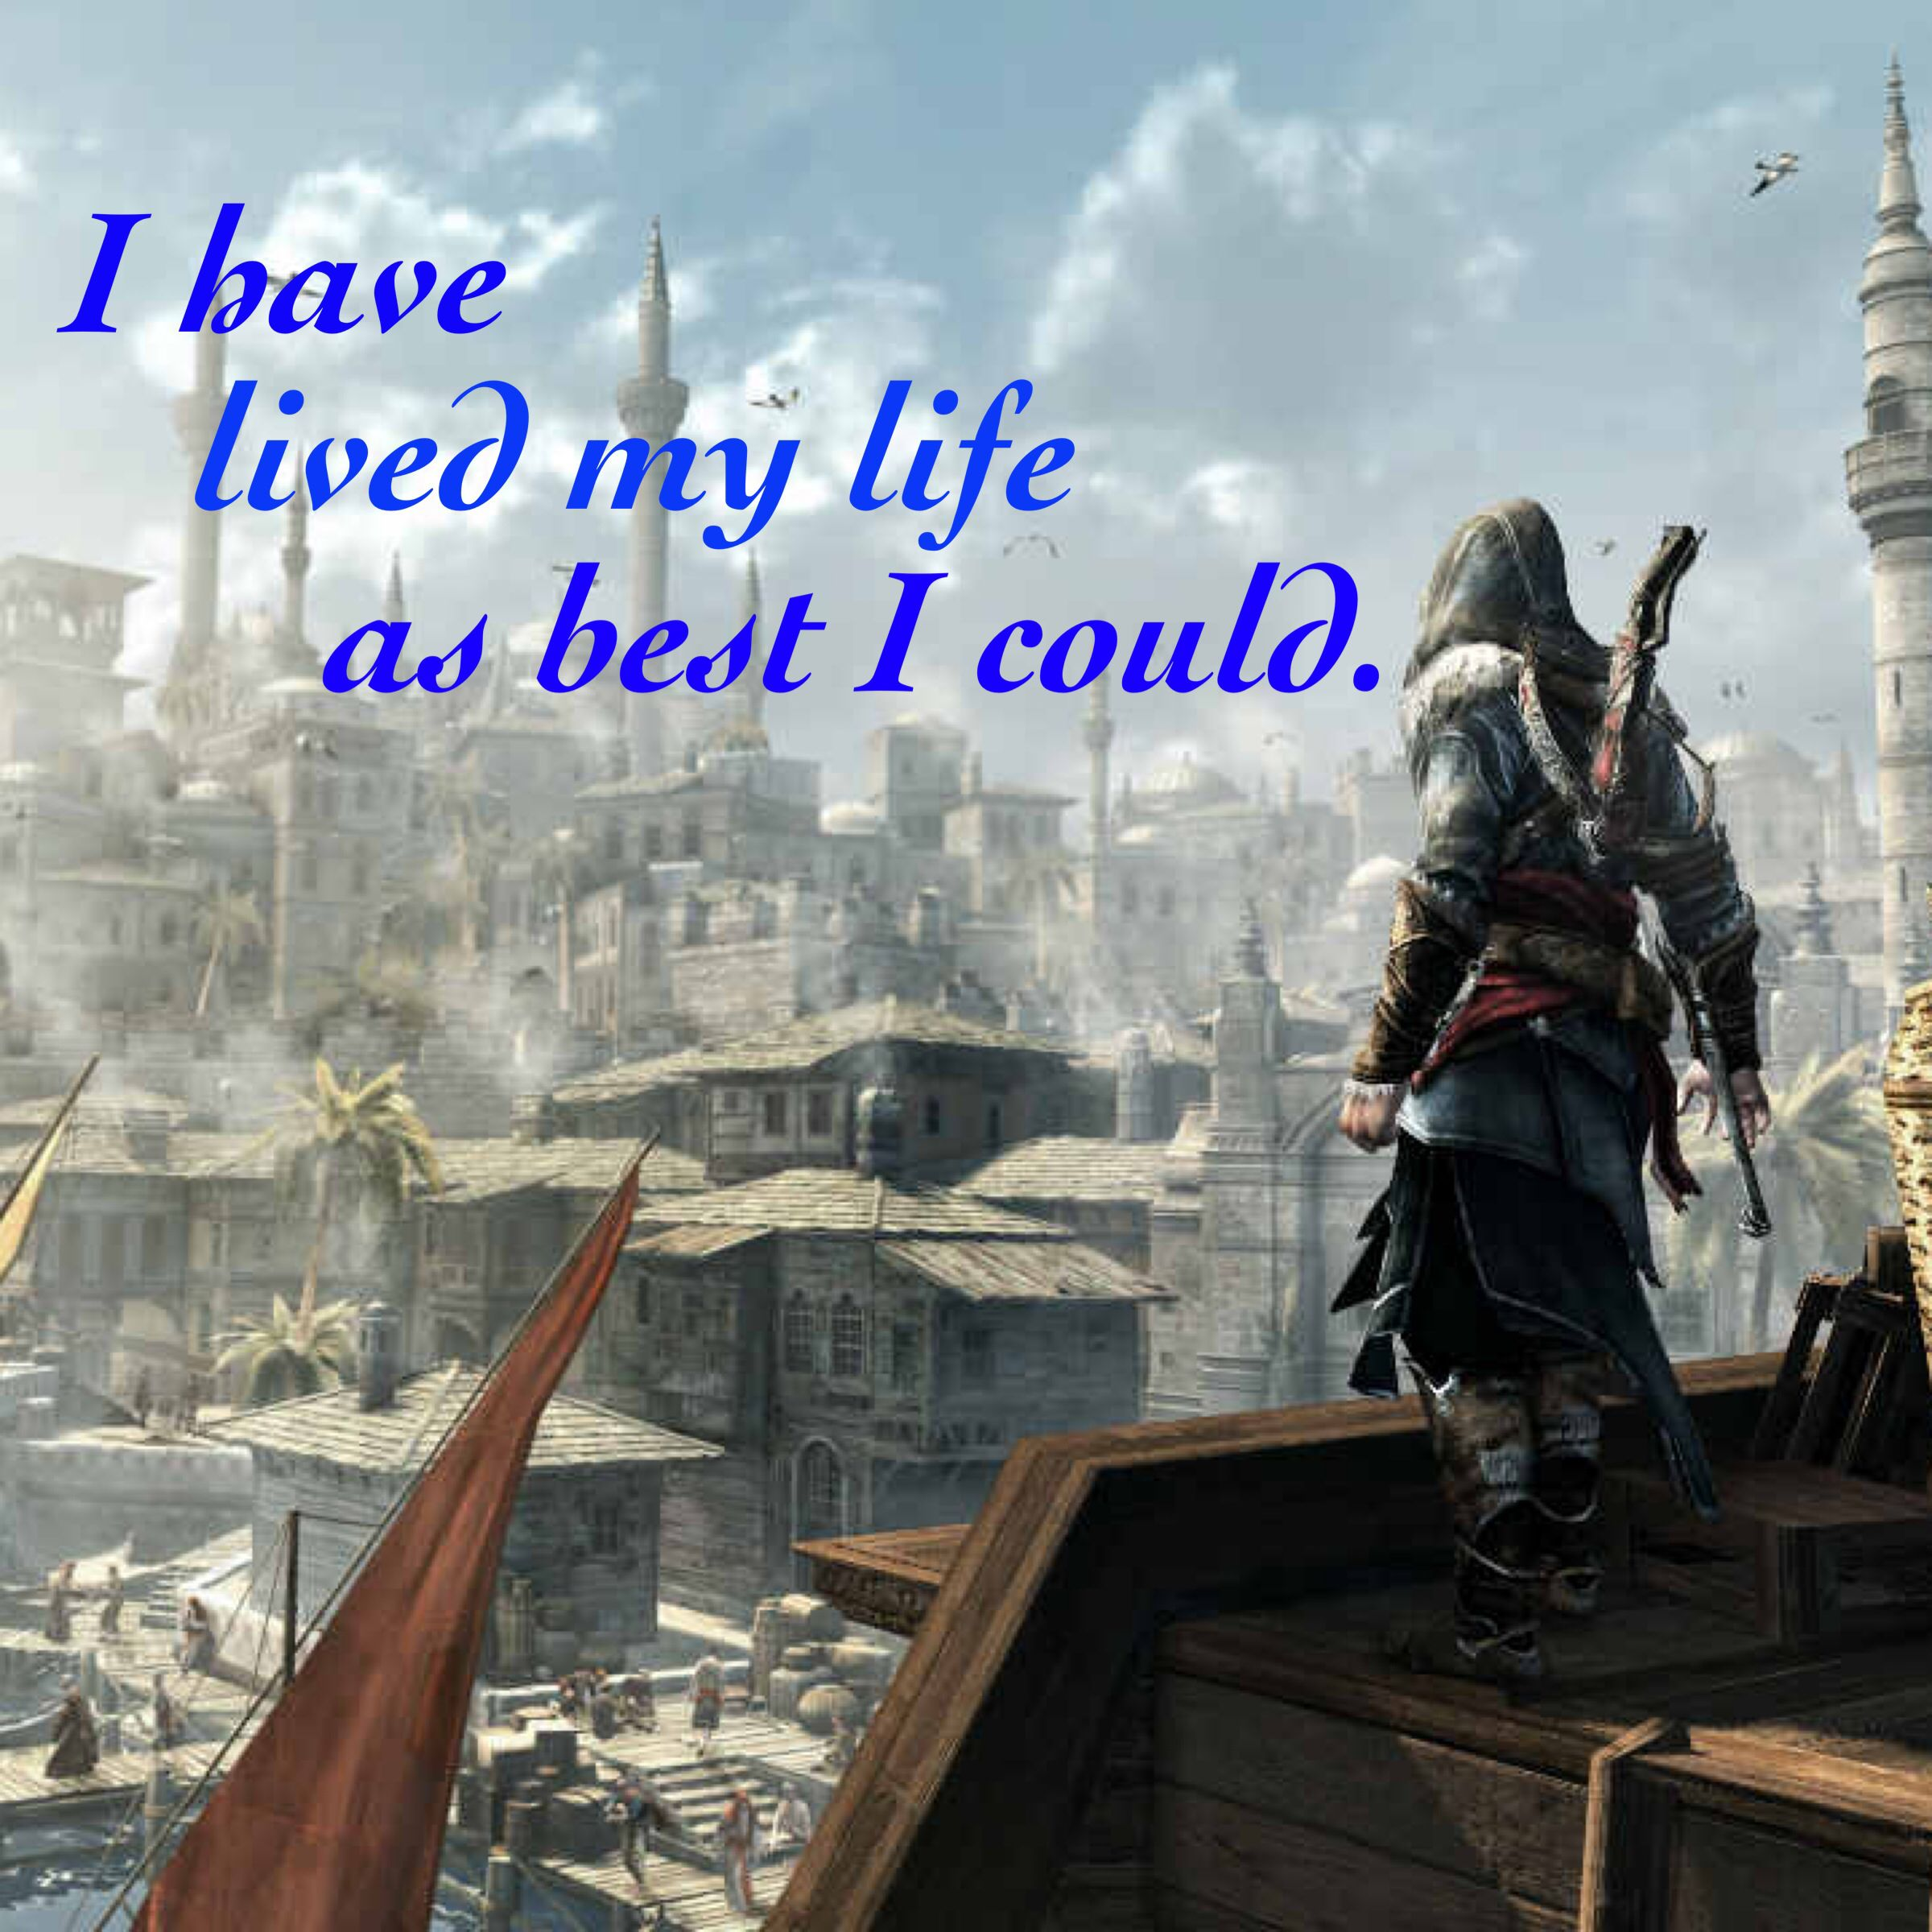 Assassin S Creed Quote Wallpaper Assassin S Creed Revelations Ezio Auditore Da Firenze Assassin S Creed Assassins Creed Assassins Creed Quotes